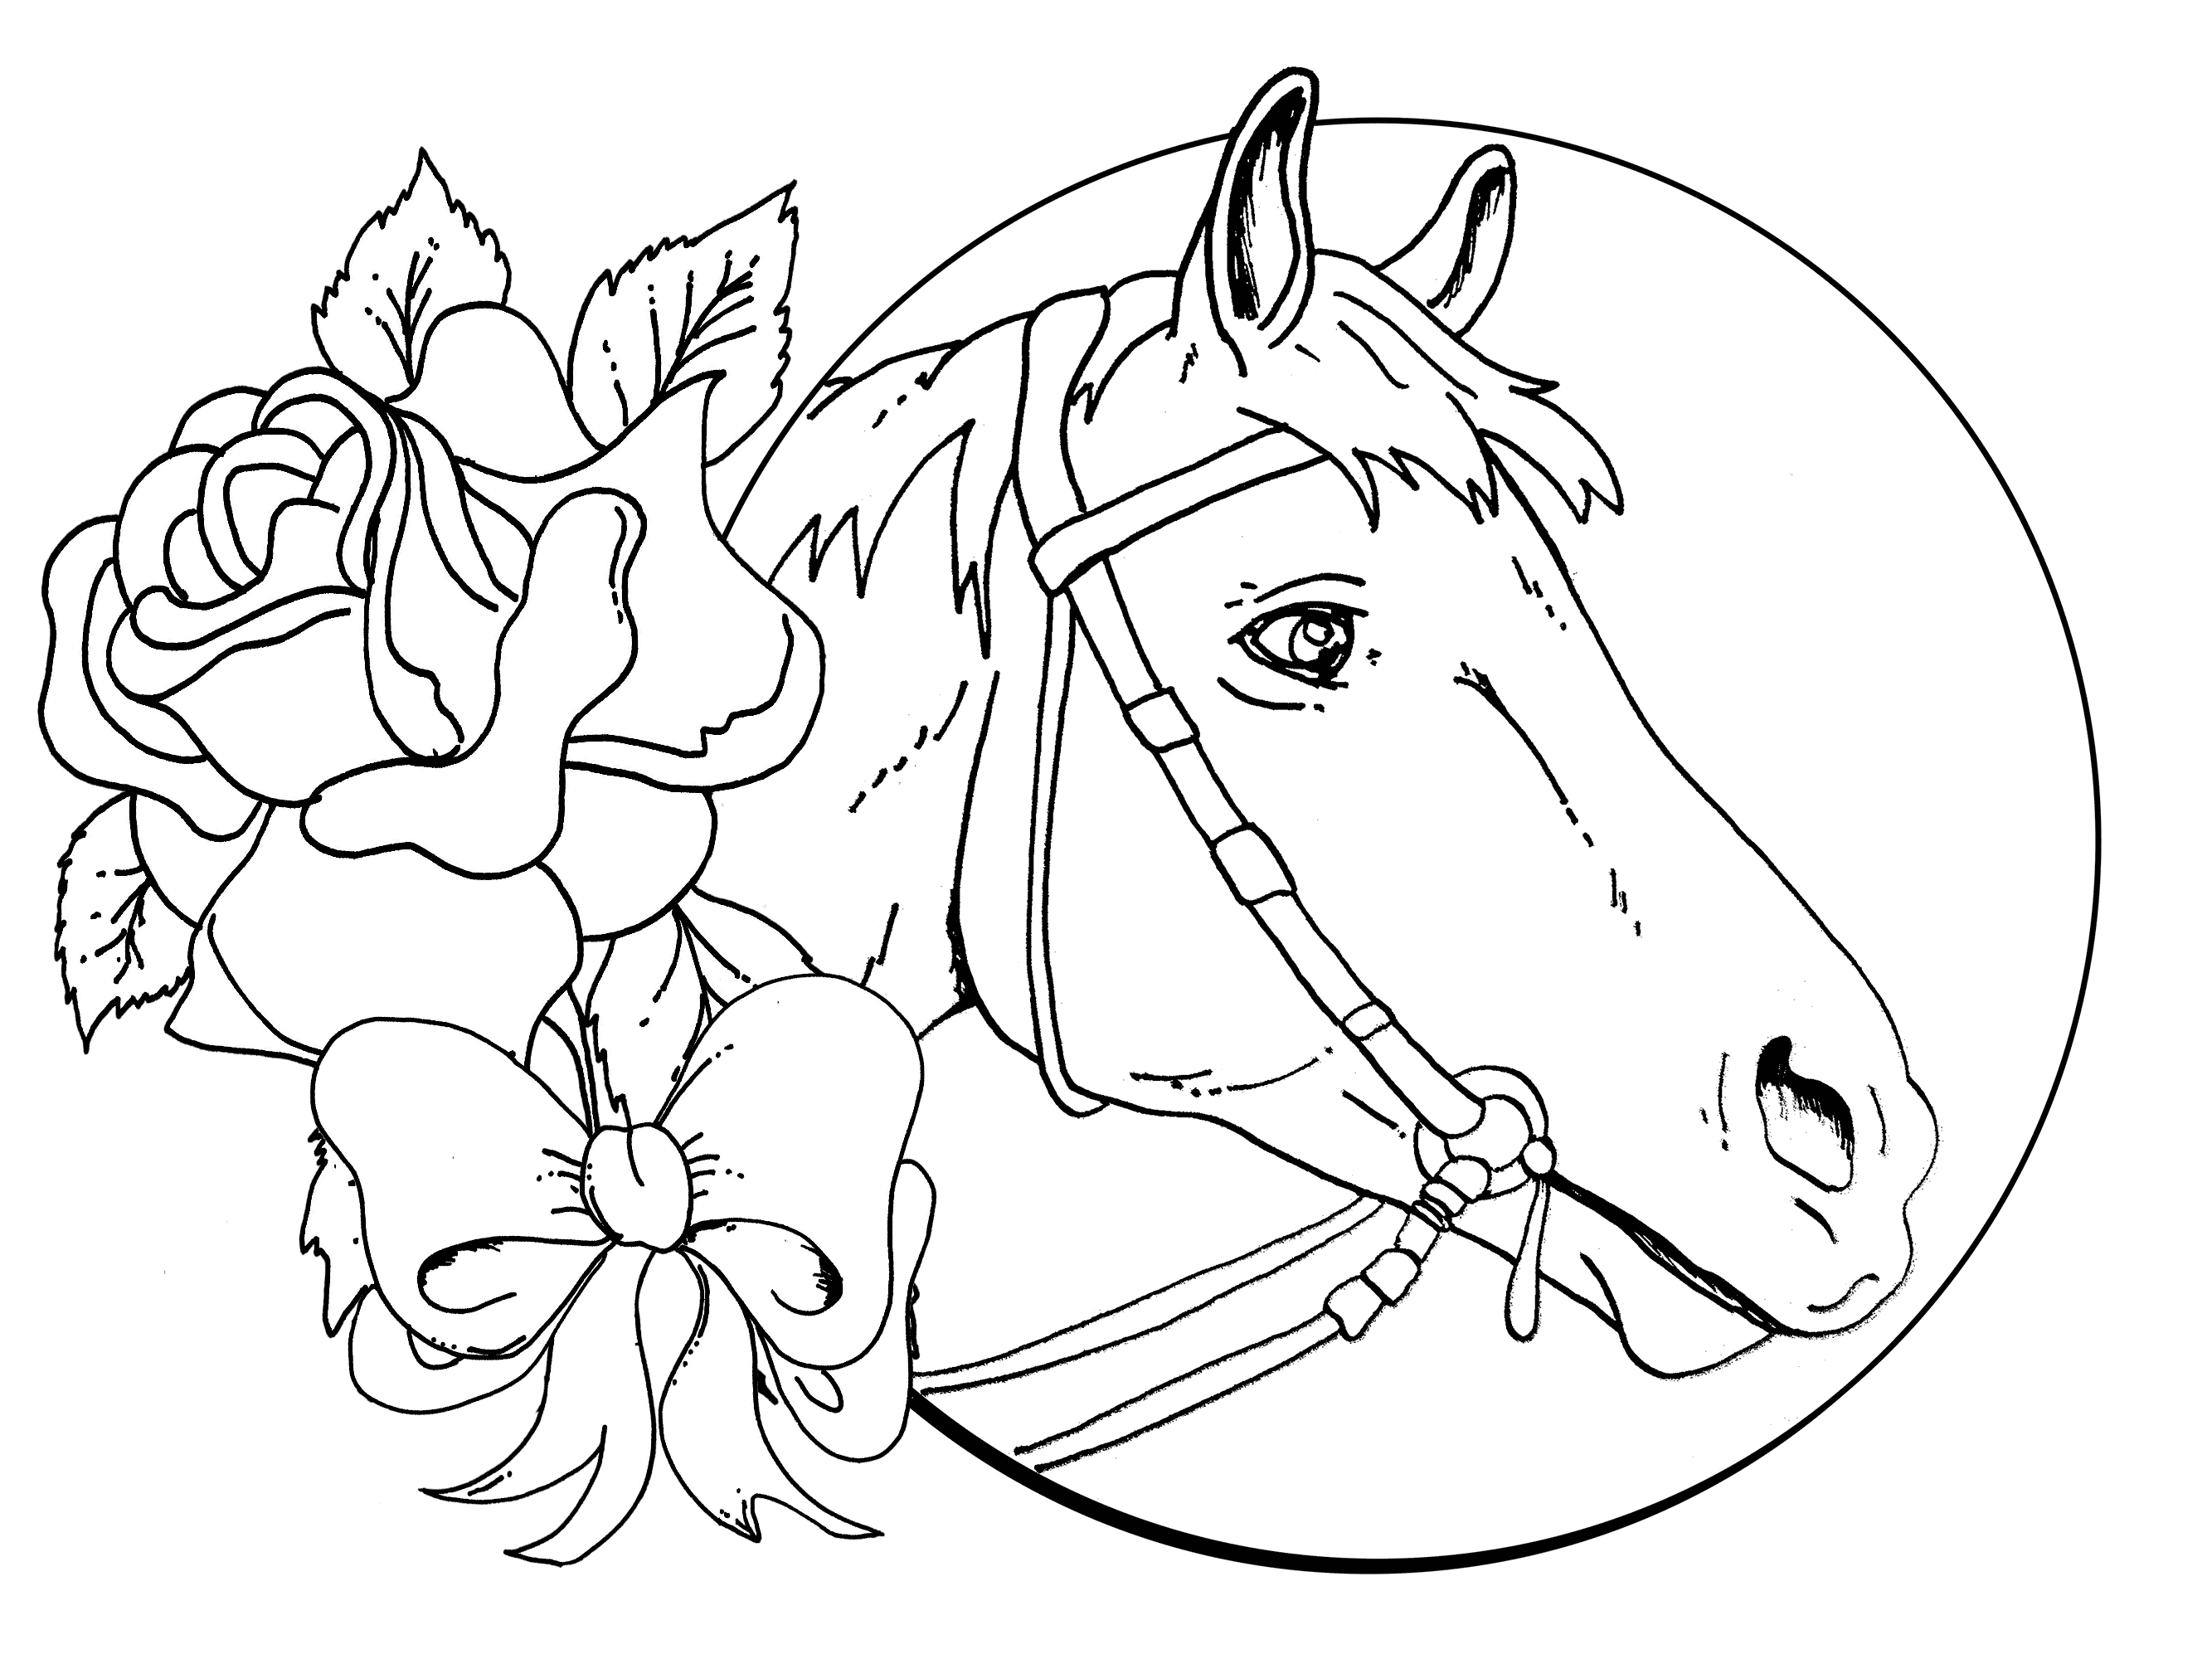 horse coloring pages for girls free horse coloring pages selah works cindy39s adult coloring girls for pages horse